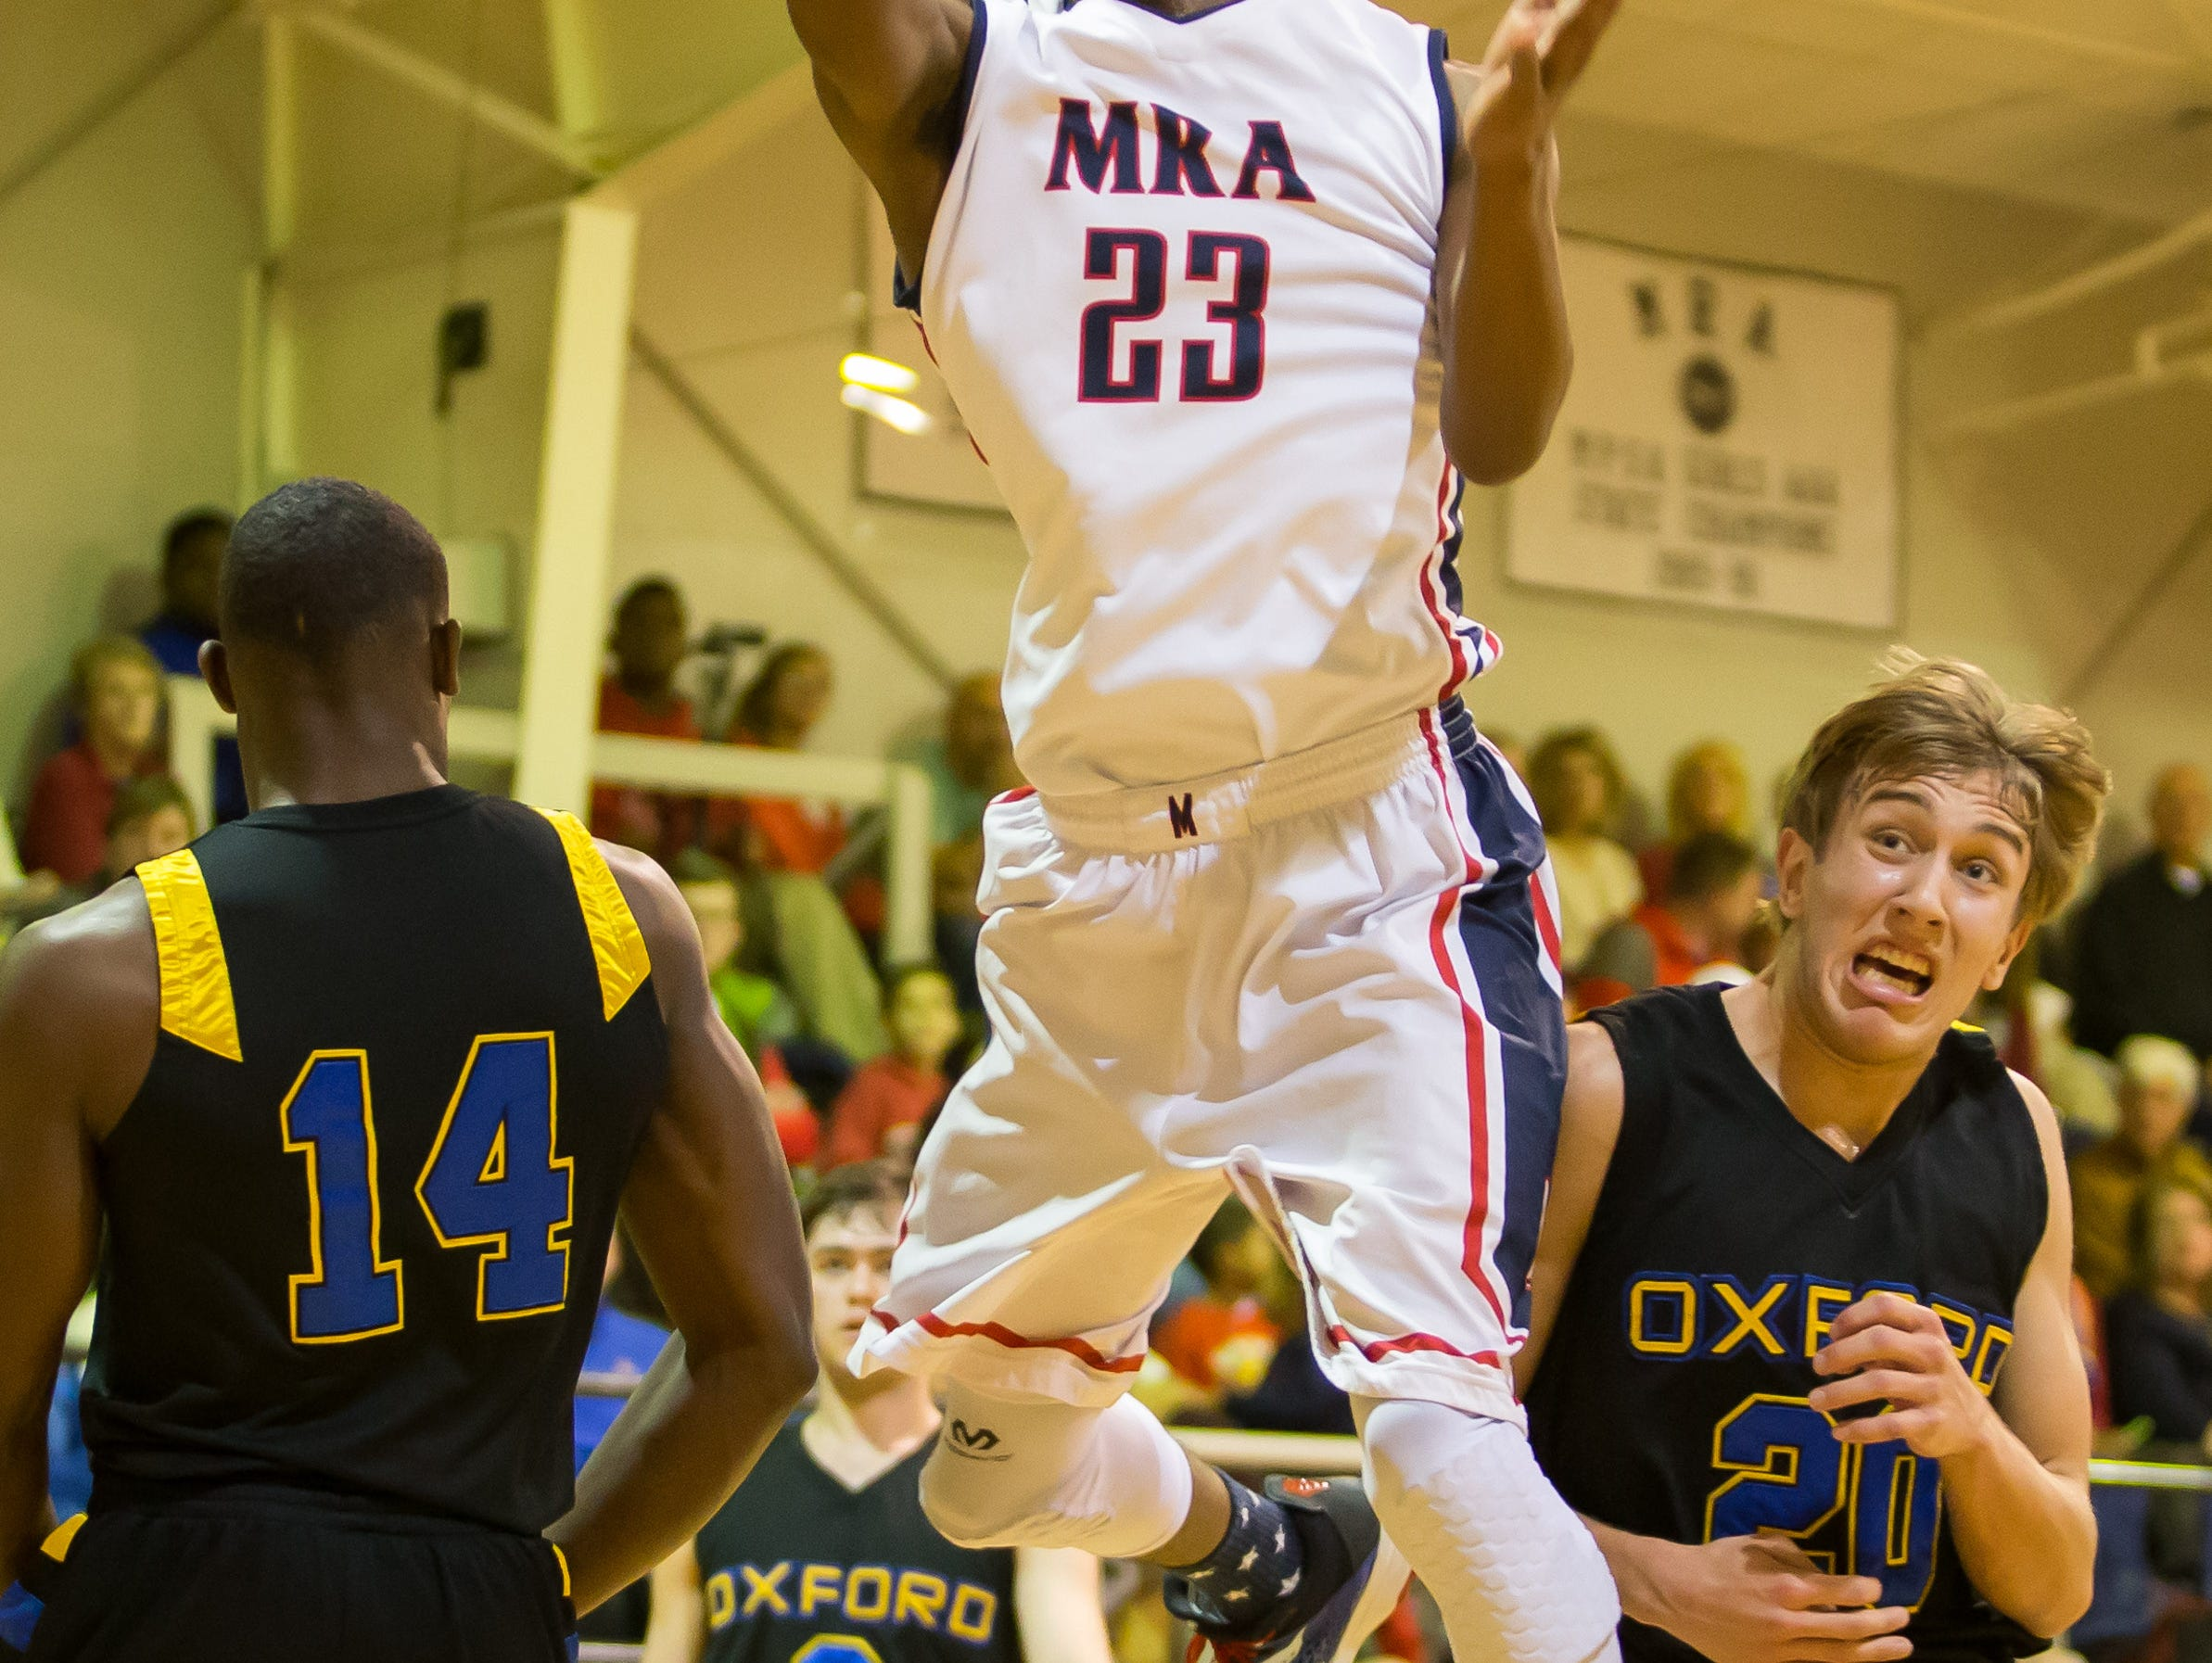 MRA's Devin Gilmore was one of five players who were heavily considered for the Dandy Dozen.